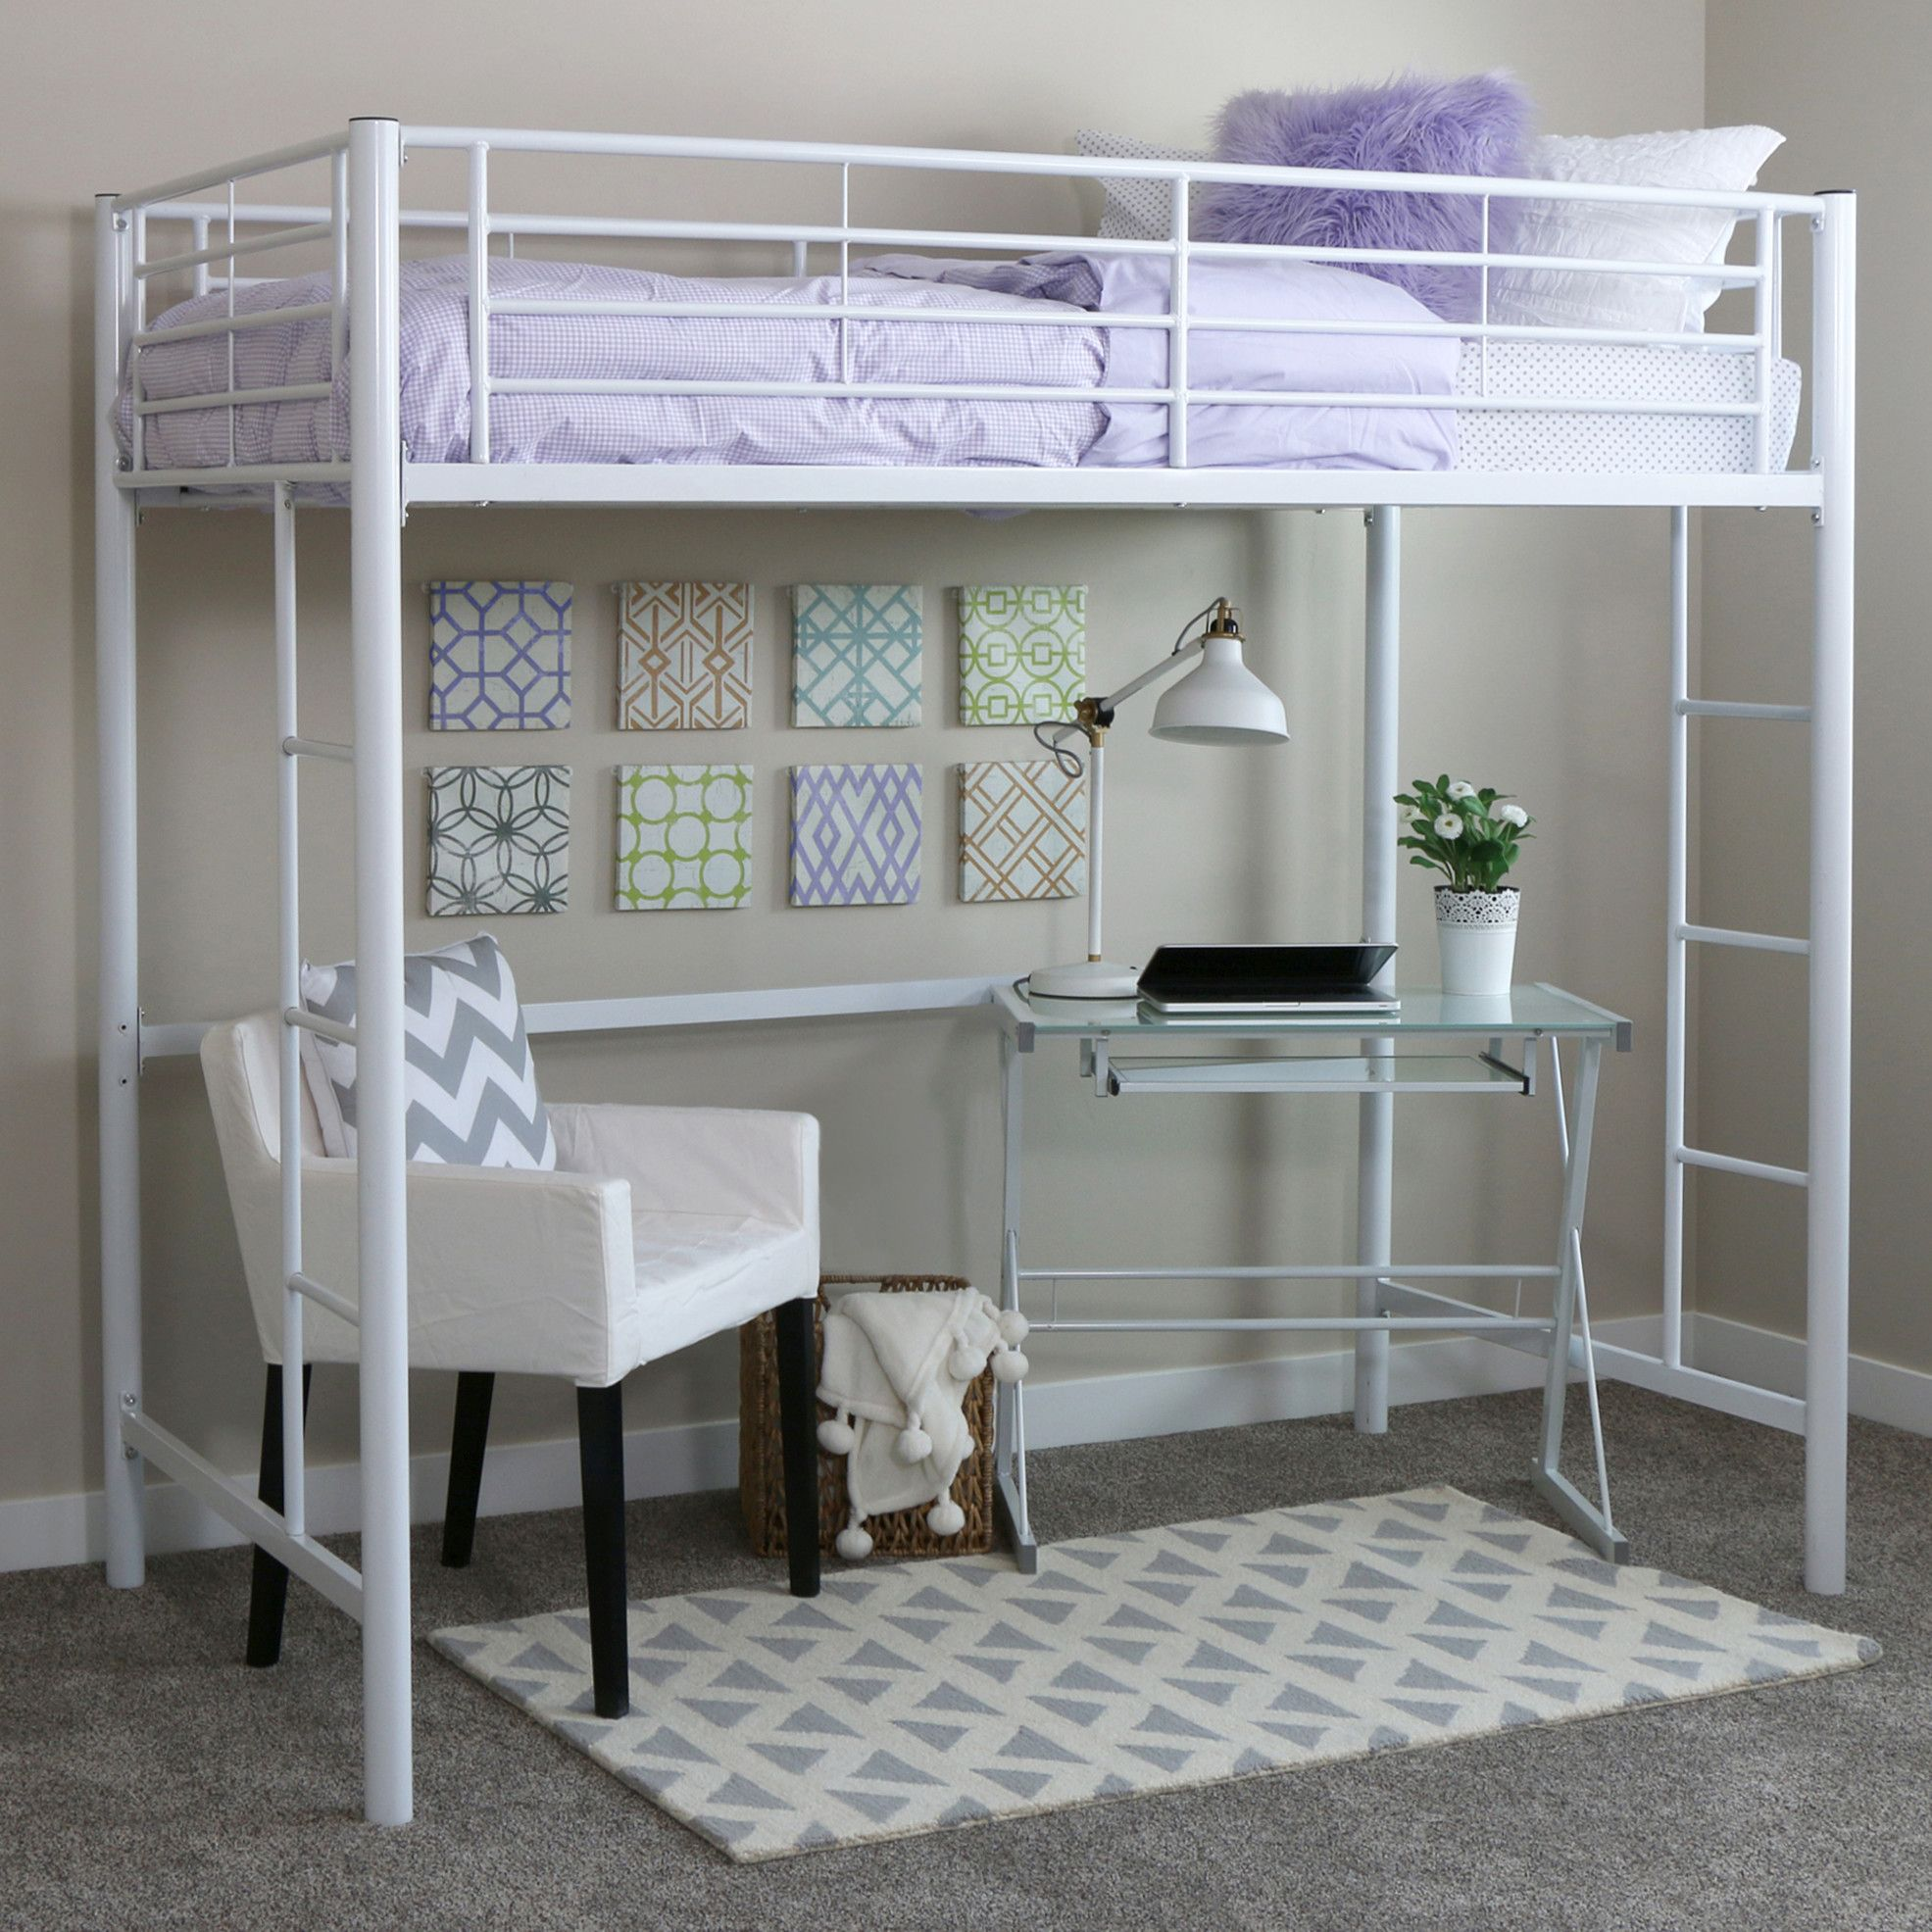 Loft bed ideas  Home Loft Concept Twin Loft Bed with BuiltIn Ladder u Reviews